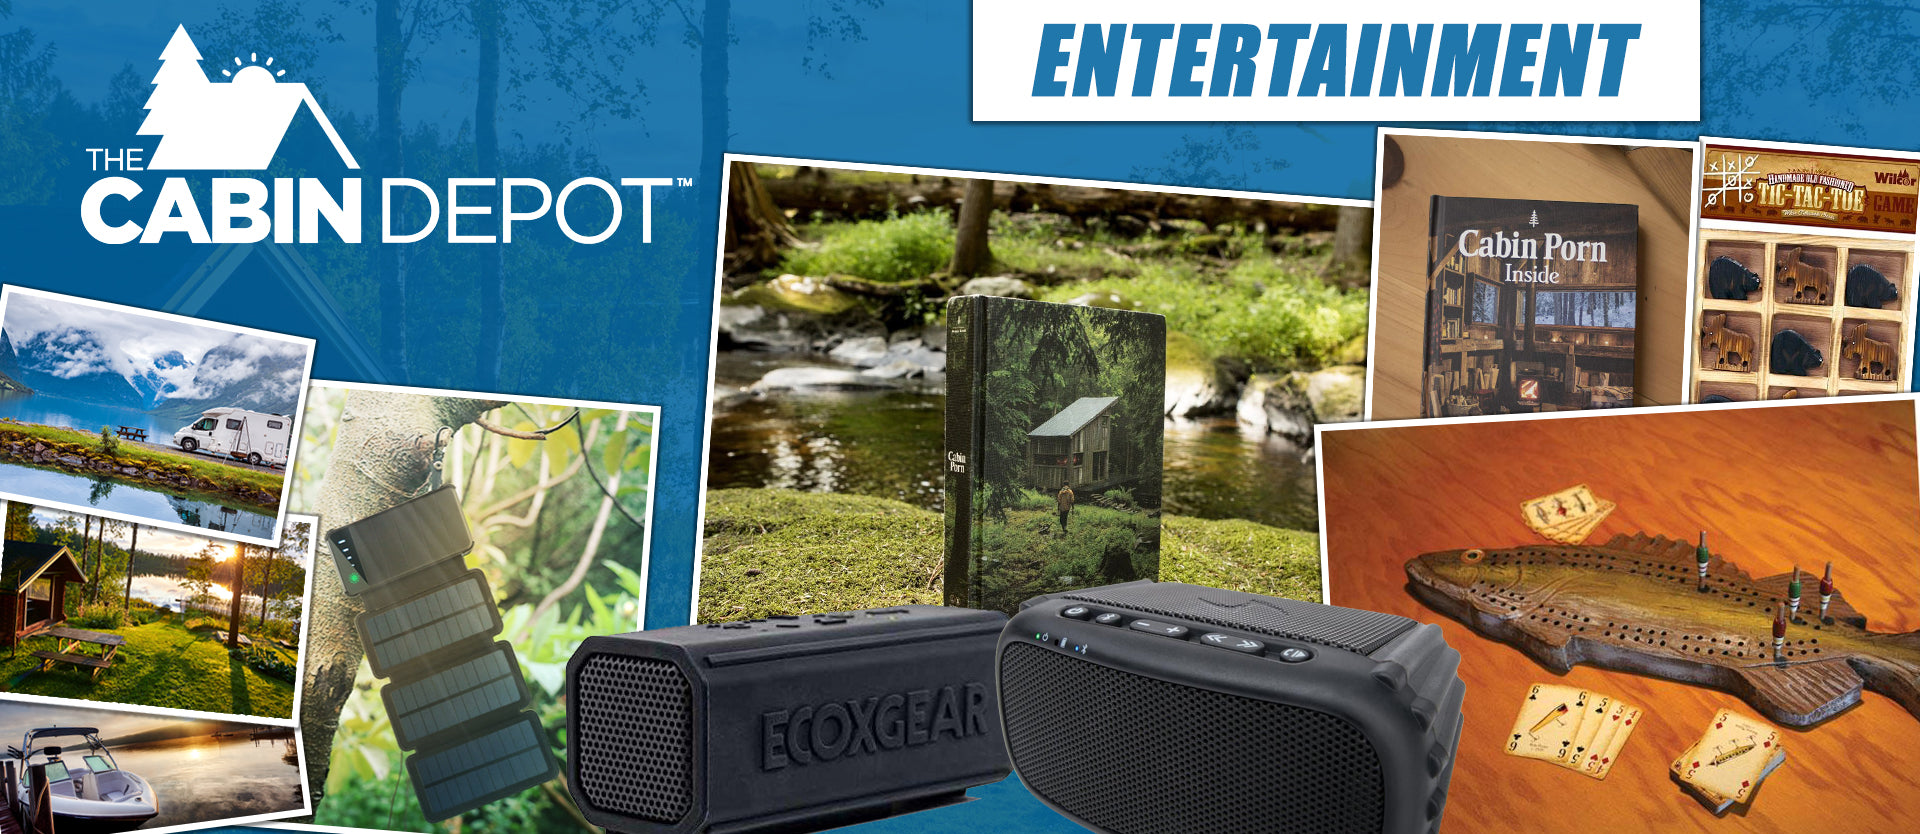 The Cabin Depot ™ Entertainment Canada Bluetooth Speakers Games